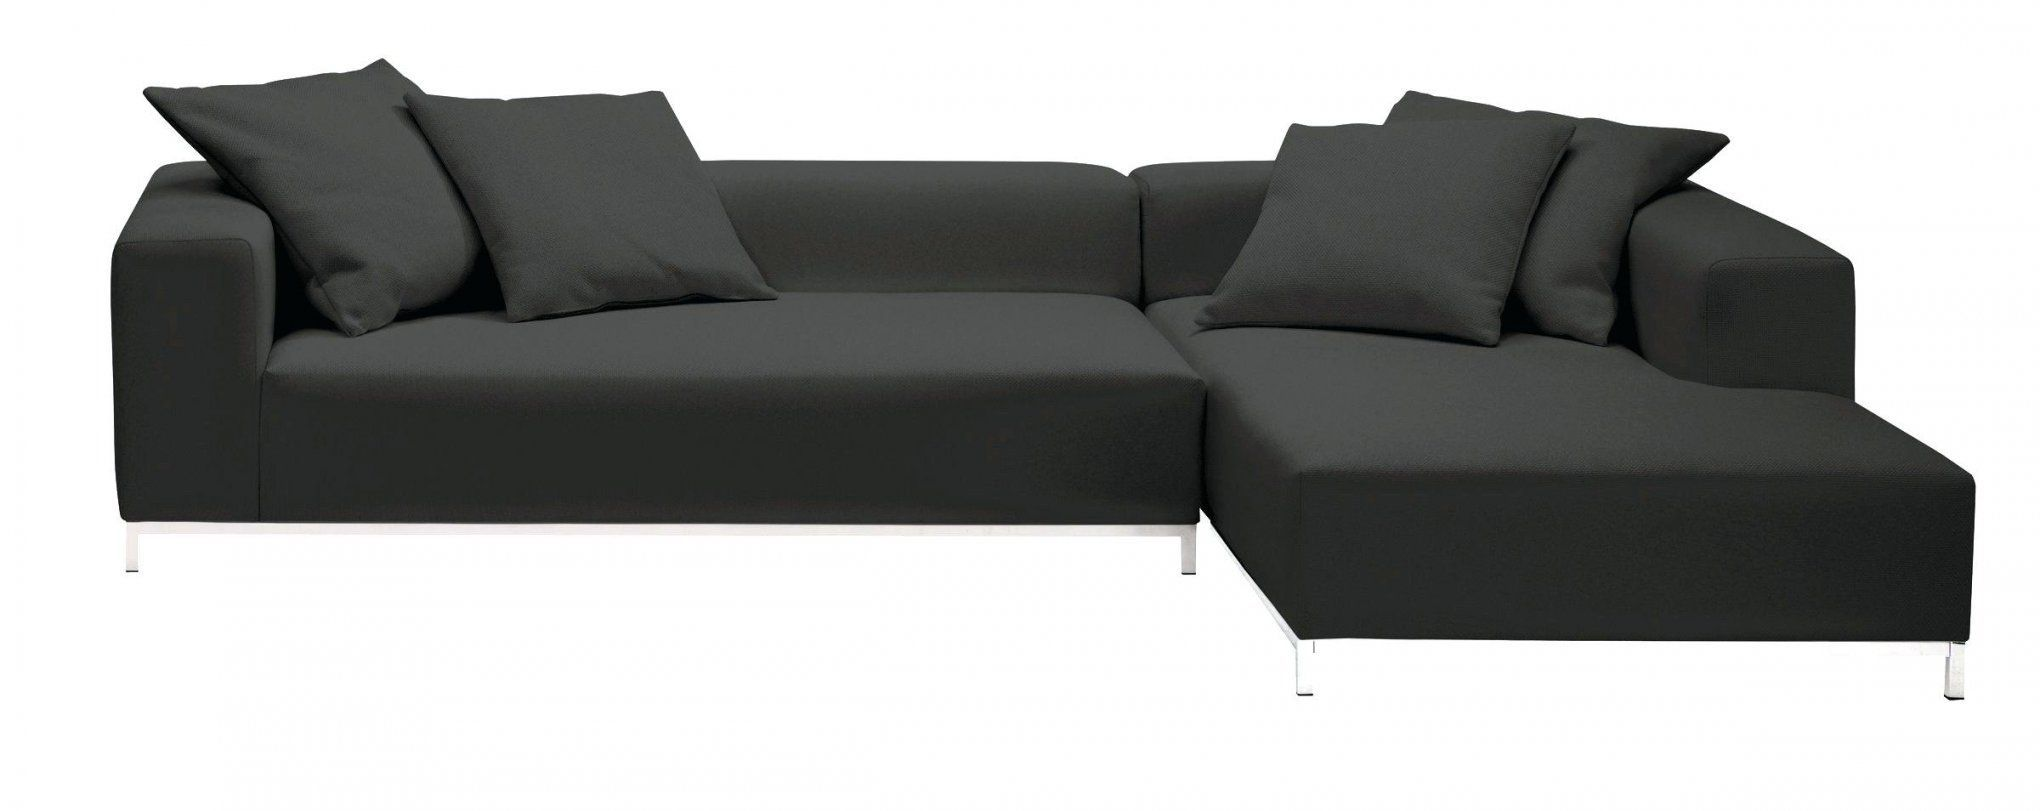 Hussen Ecksofa Ottomane Links In 2019 Sofa Couch Furniture